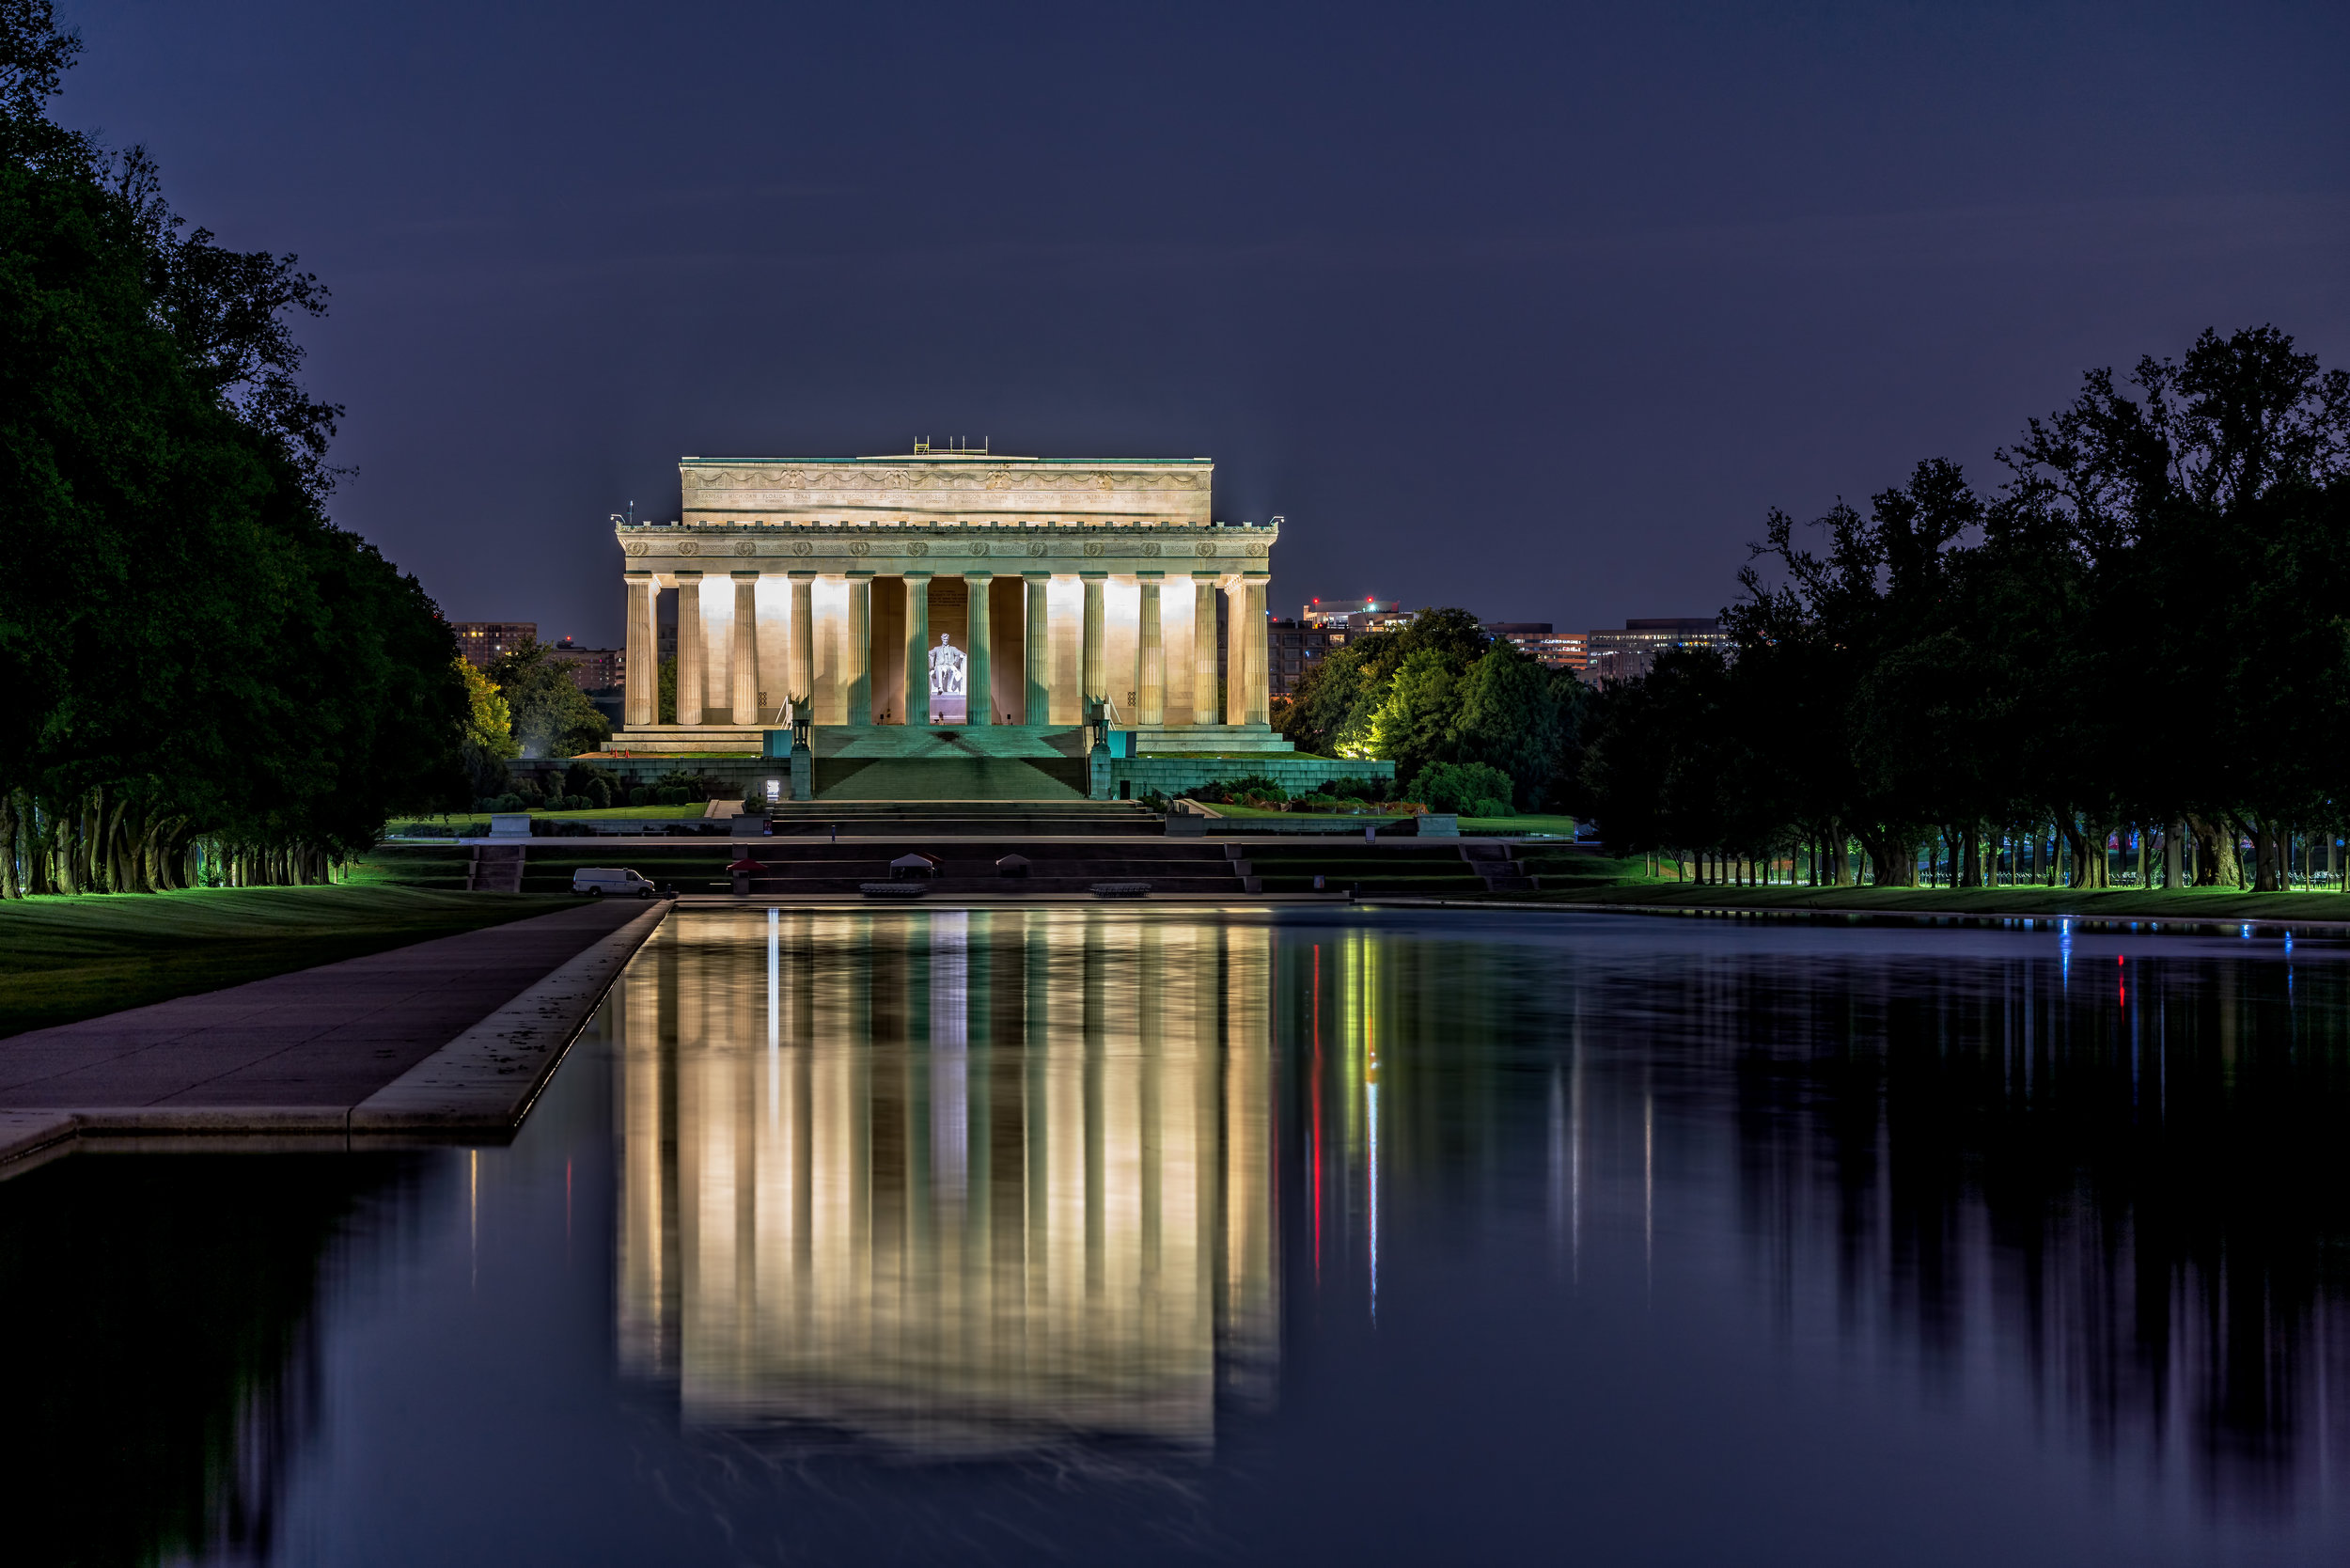 Walking towards the Lincoln Memorial from the World War II Memorial around 4:30am